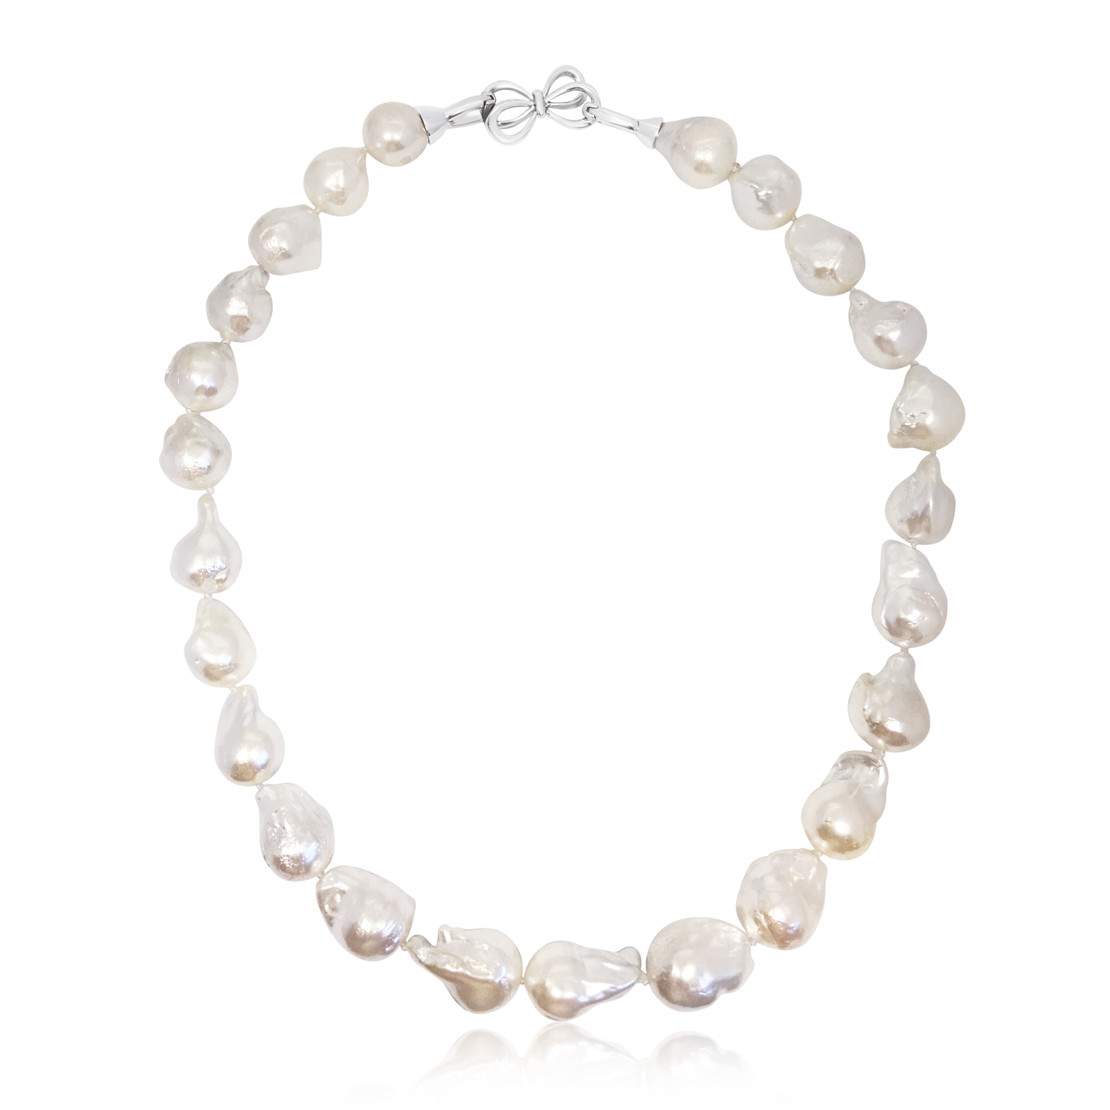 Celebrating the June Pearl Month